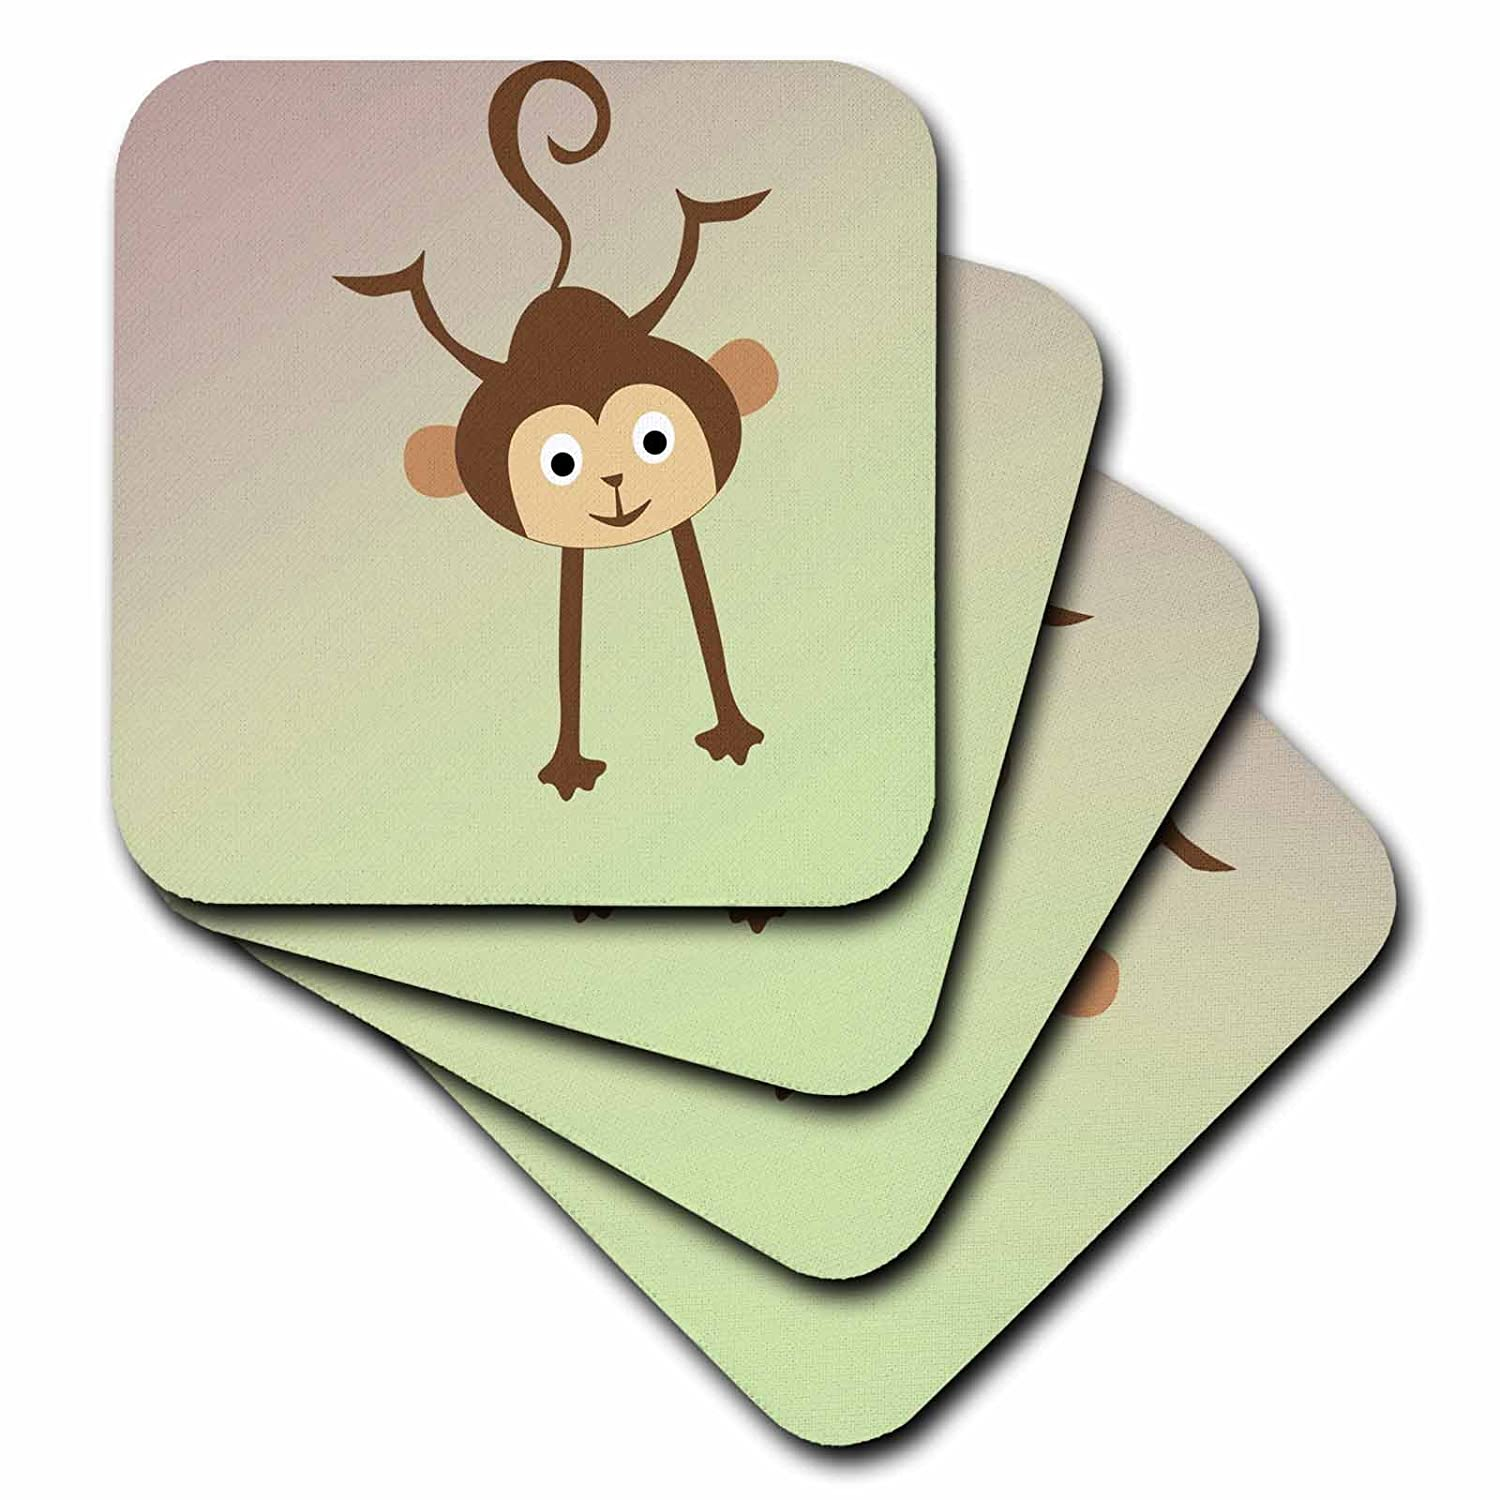 3dRose cst/_79254/_2 Happy Playful Monkey Childrens Art Animals Soft Coasters Set of 8